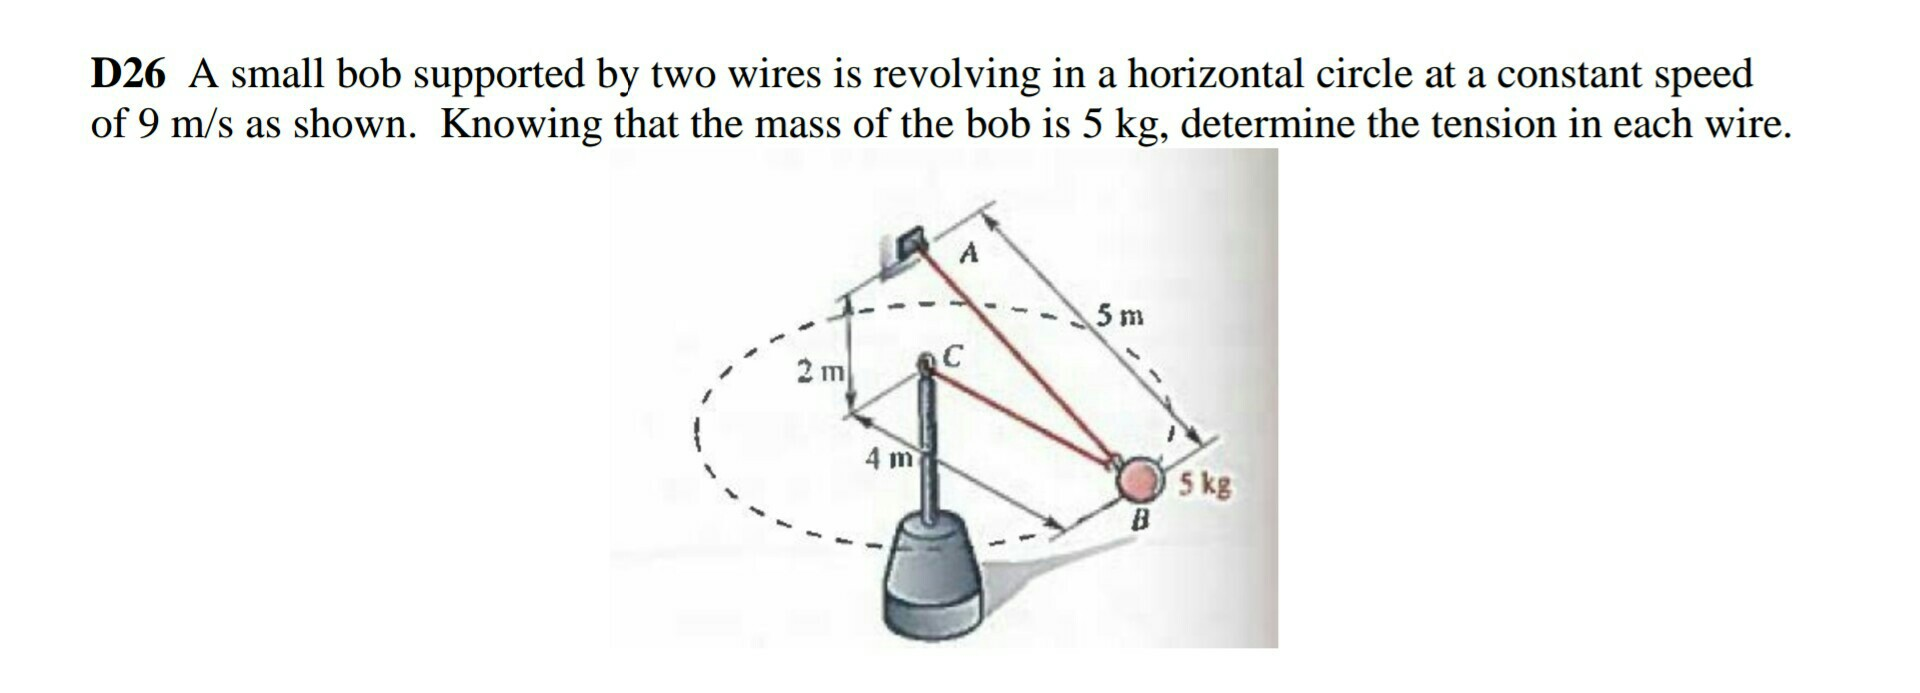 d26 a small bob supported by two wires is revolving in a horizontal circle  at a